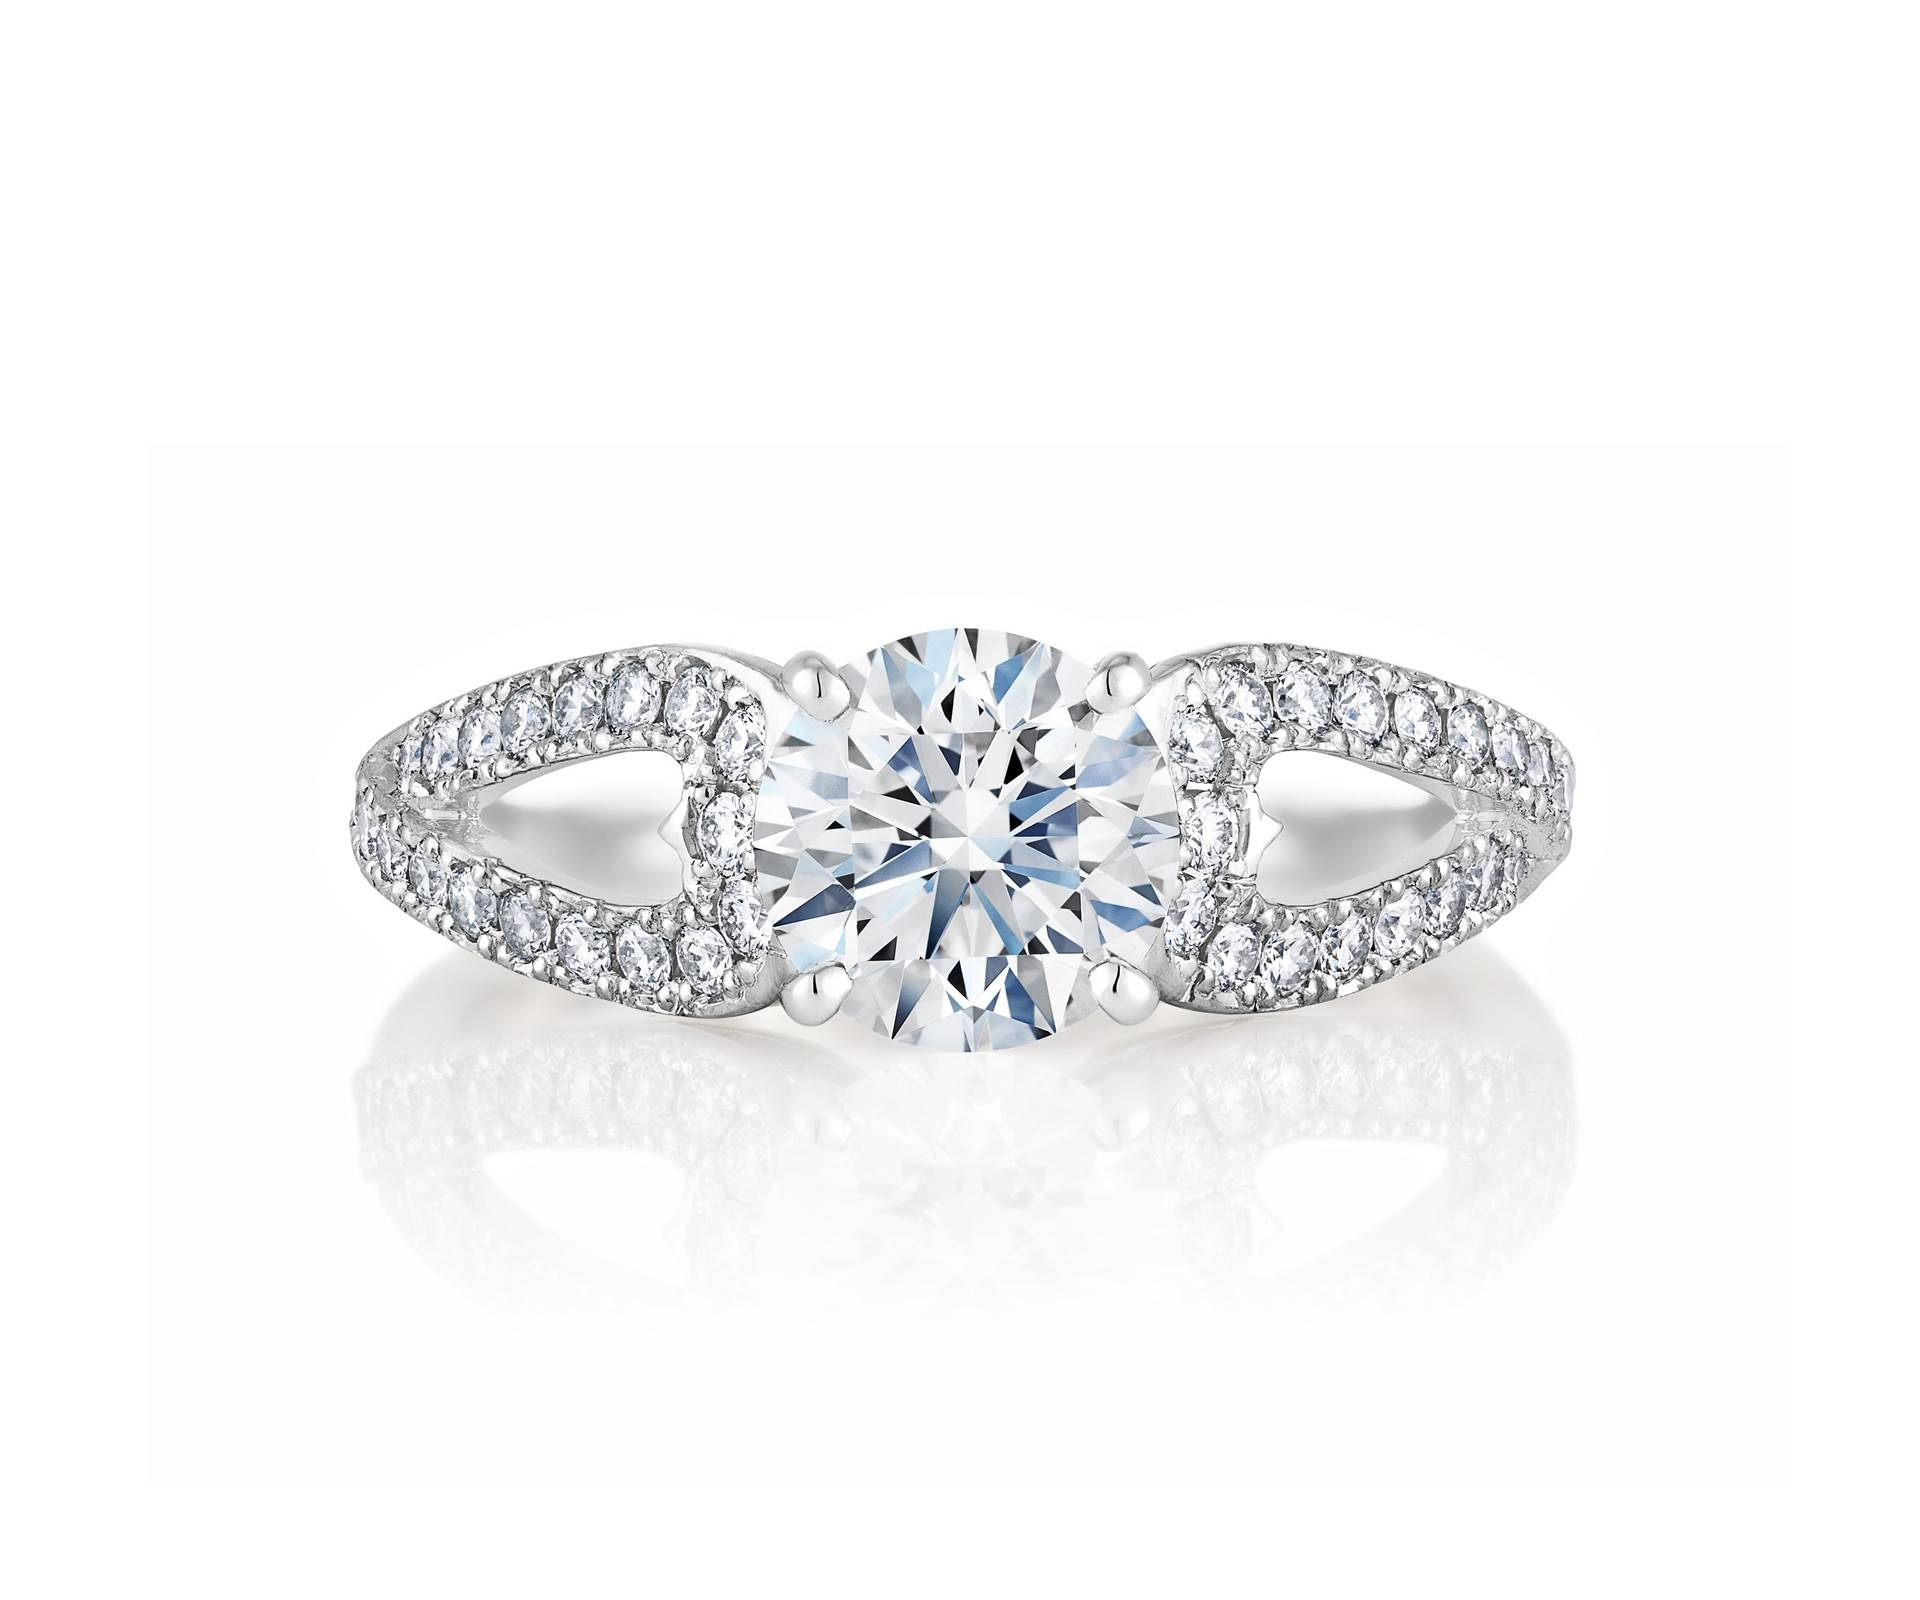 Diamond Engagement Rings & Promise Rings | De Beers With Regard To Spiral Engagement Rings (Gallery 14 of 15)